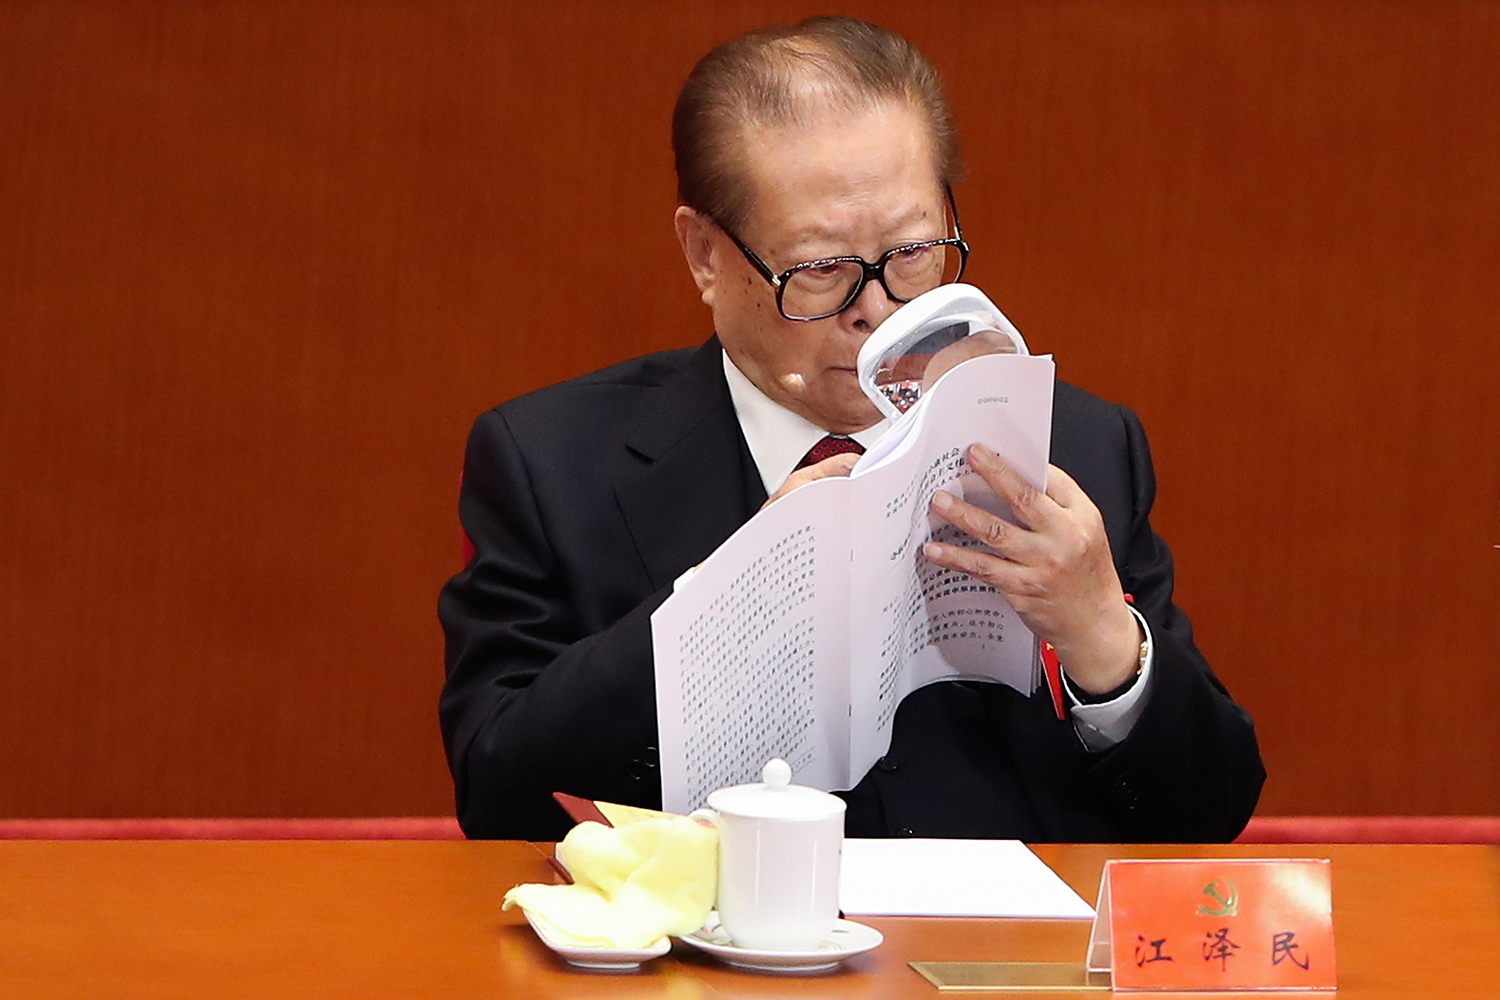 October 18, China's former president Jiang Zemin, 91, attends the opening session of the Chinese Communist Party's Congress at the Great Hall of the People in Beijing, on October 18, 2017 in Beijing. (Lintao Zhang/Getty Images)